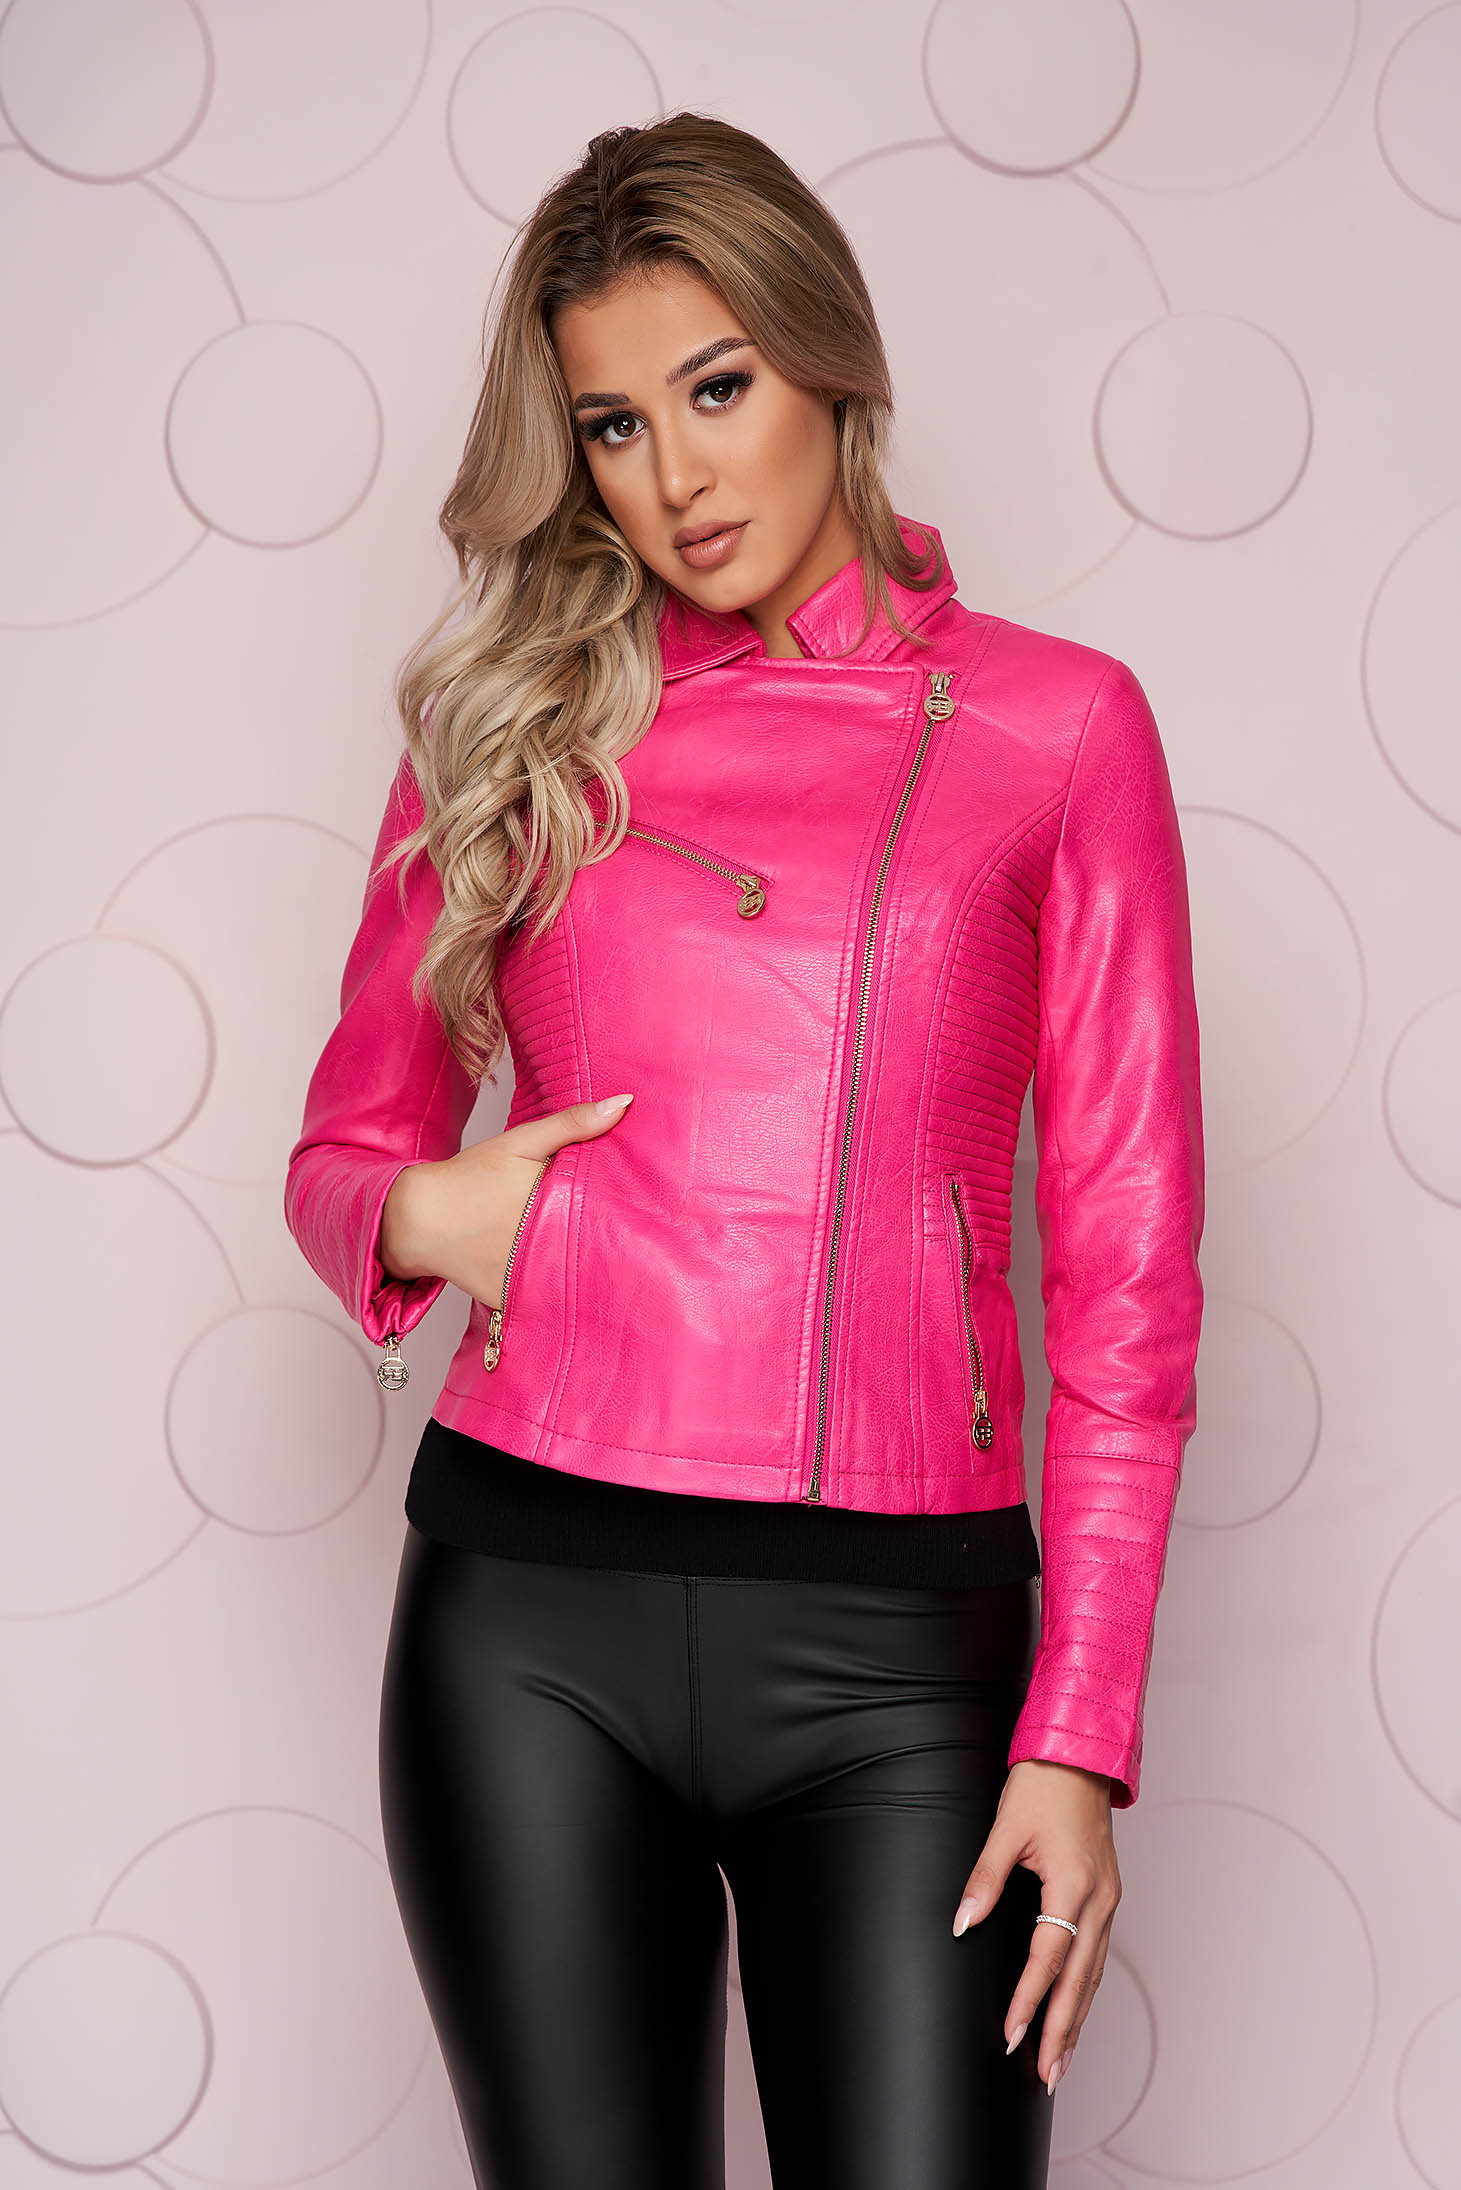 Pink jacket tented short cut thick fabric from ecological leather with zipper details pockets zipped sleeves